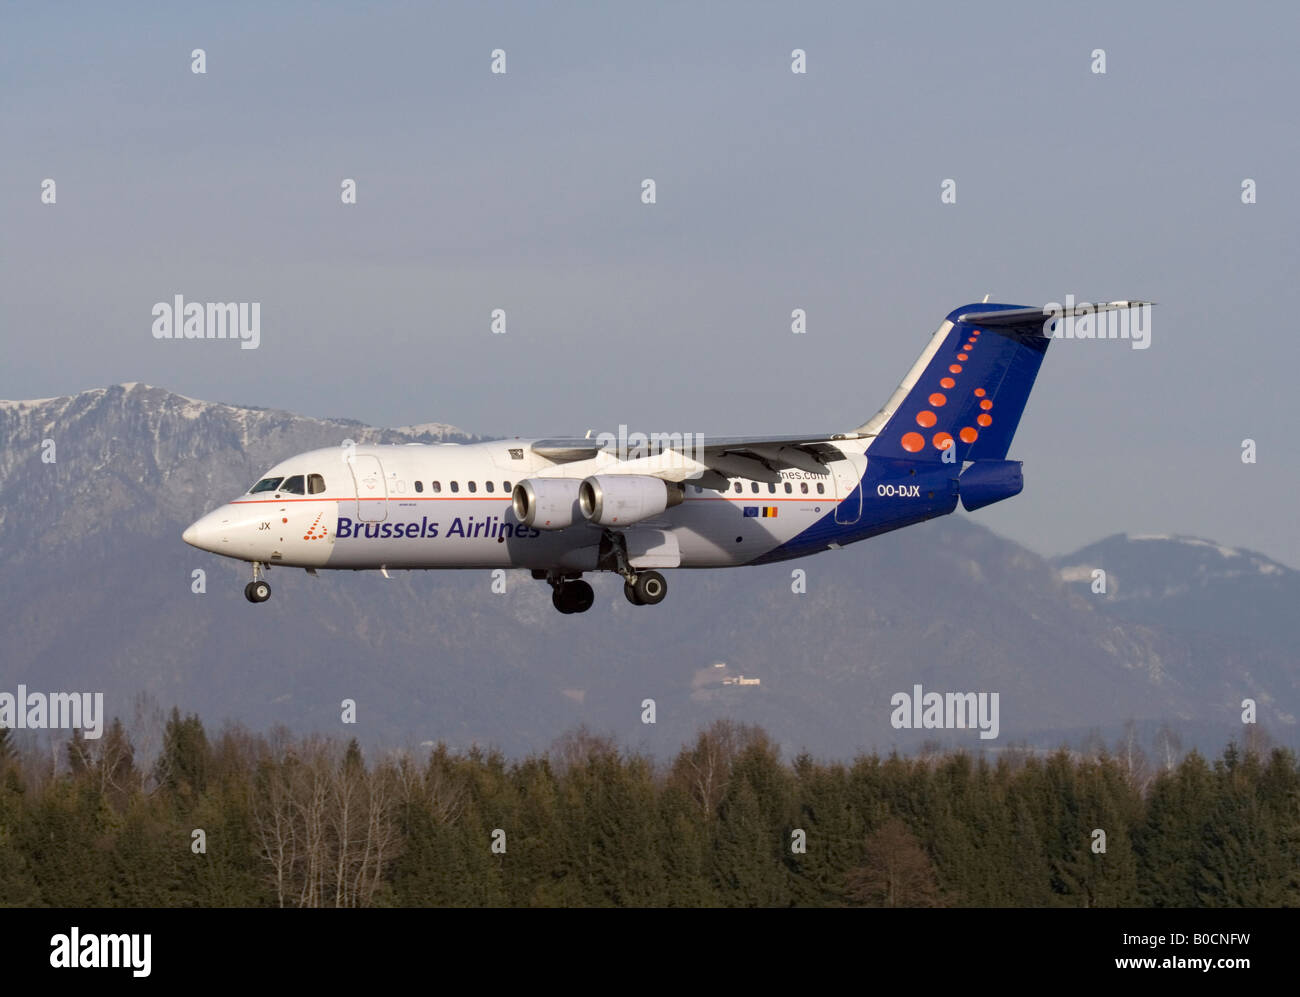 Brussels Airlines Avro RJ85 regional airliner landing at Ljubljana Airport. Air travel in Europe. - Stock Image